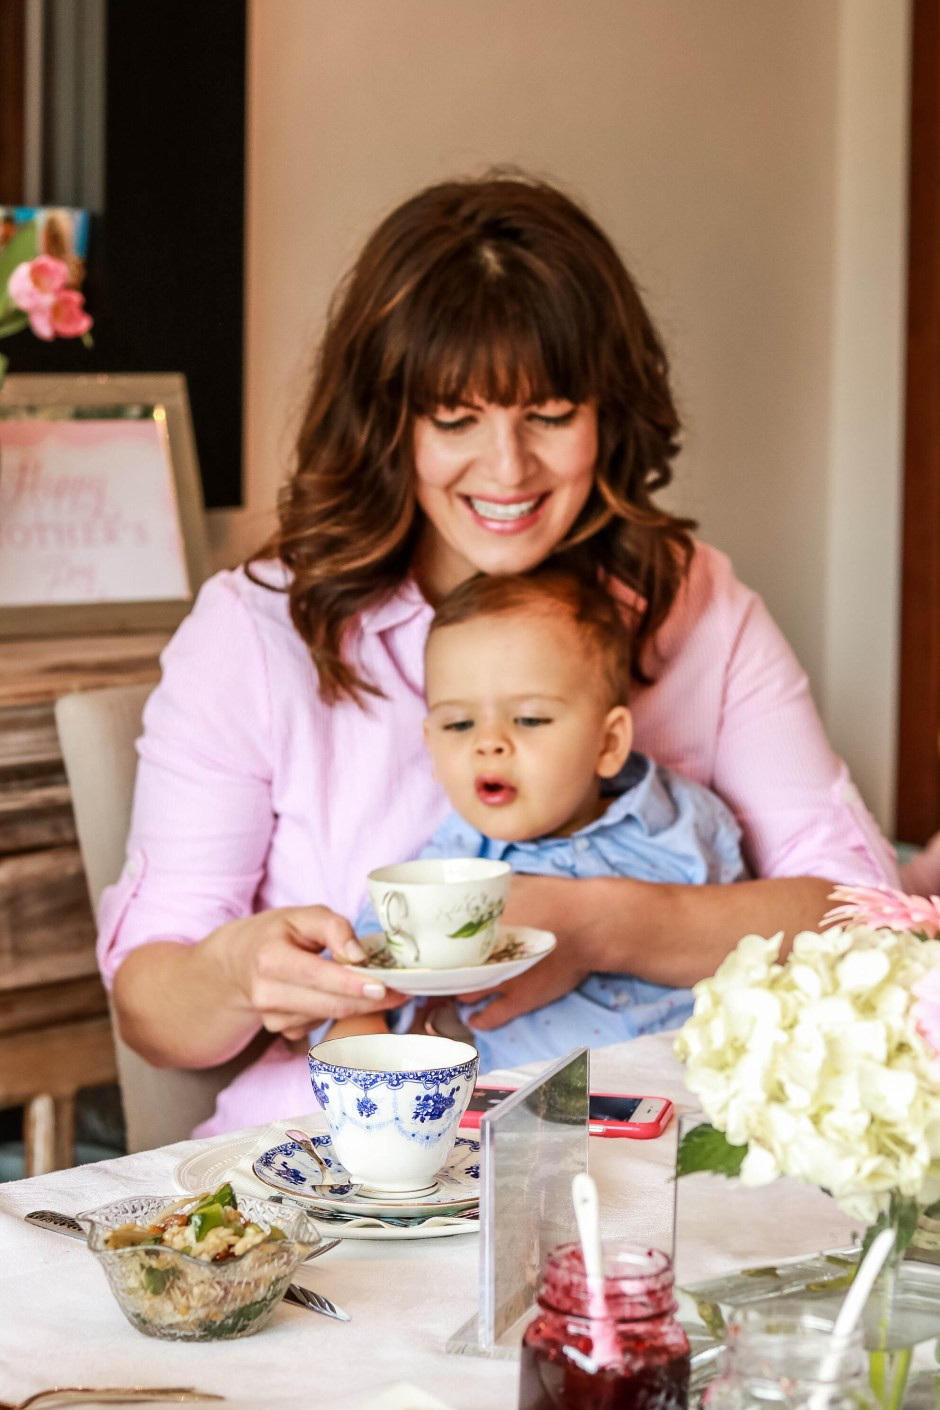 mother's day activity, afternoon tea, pink stripe feminine dress